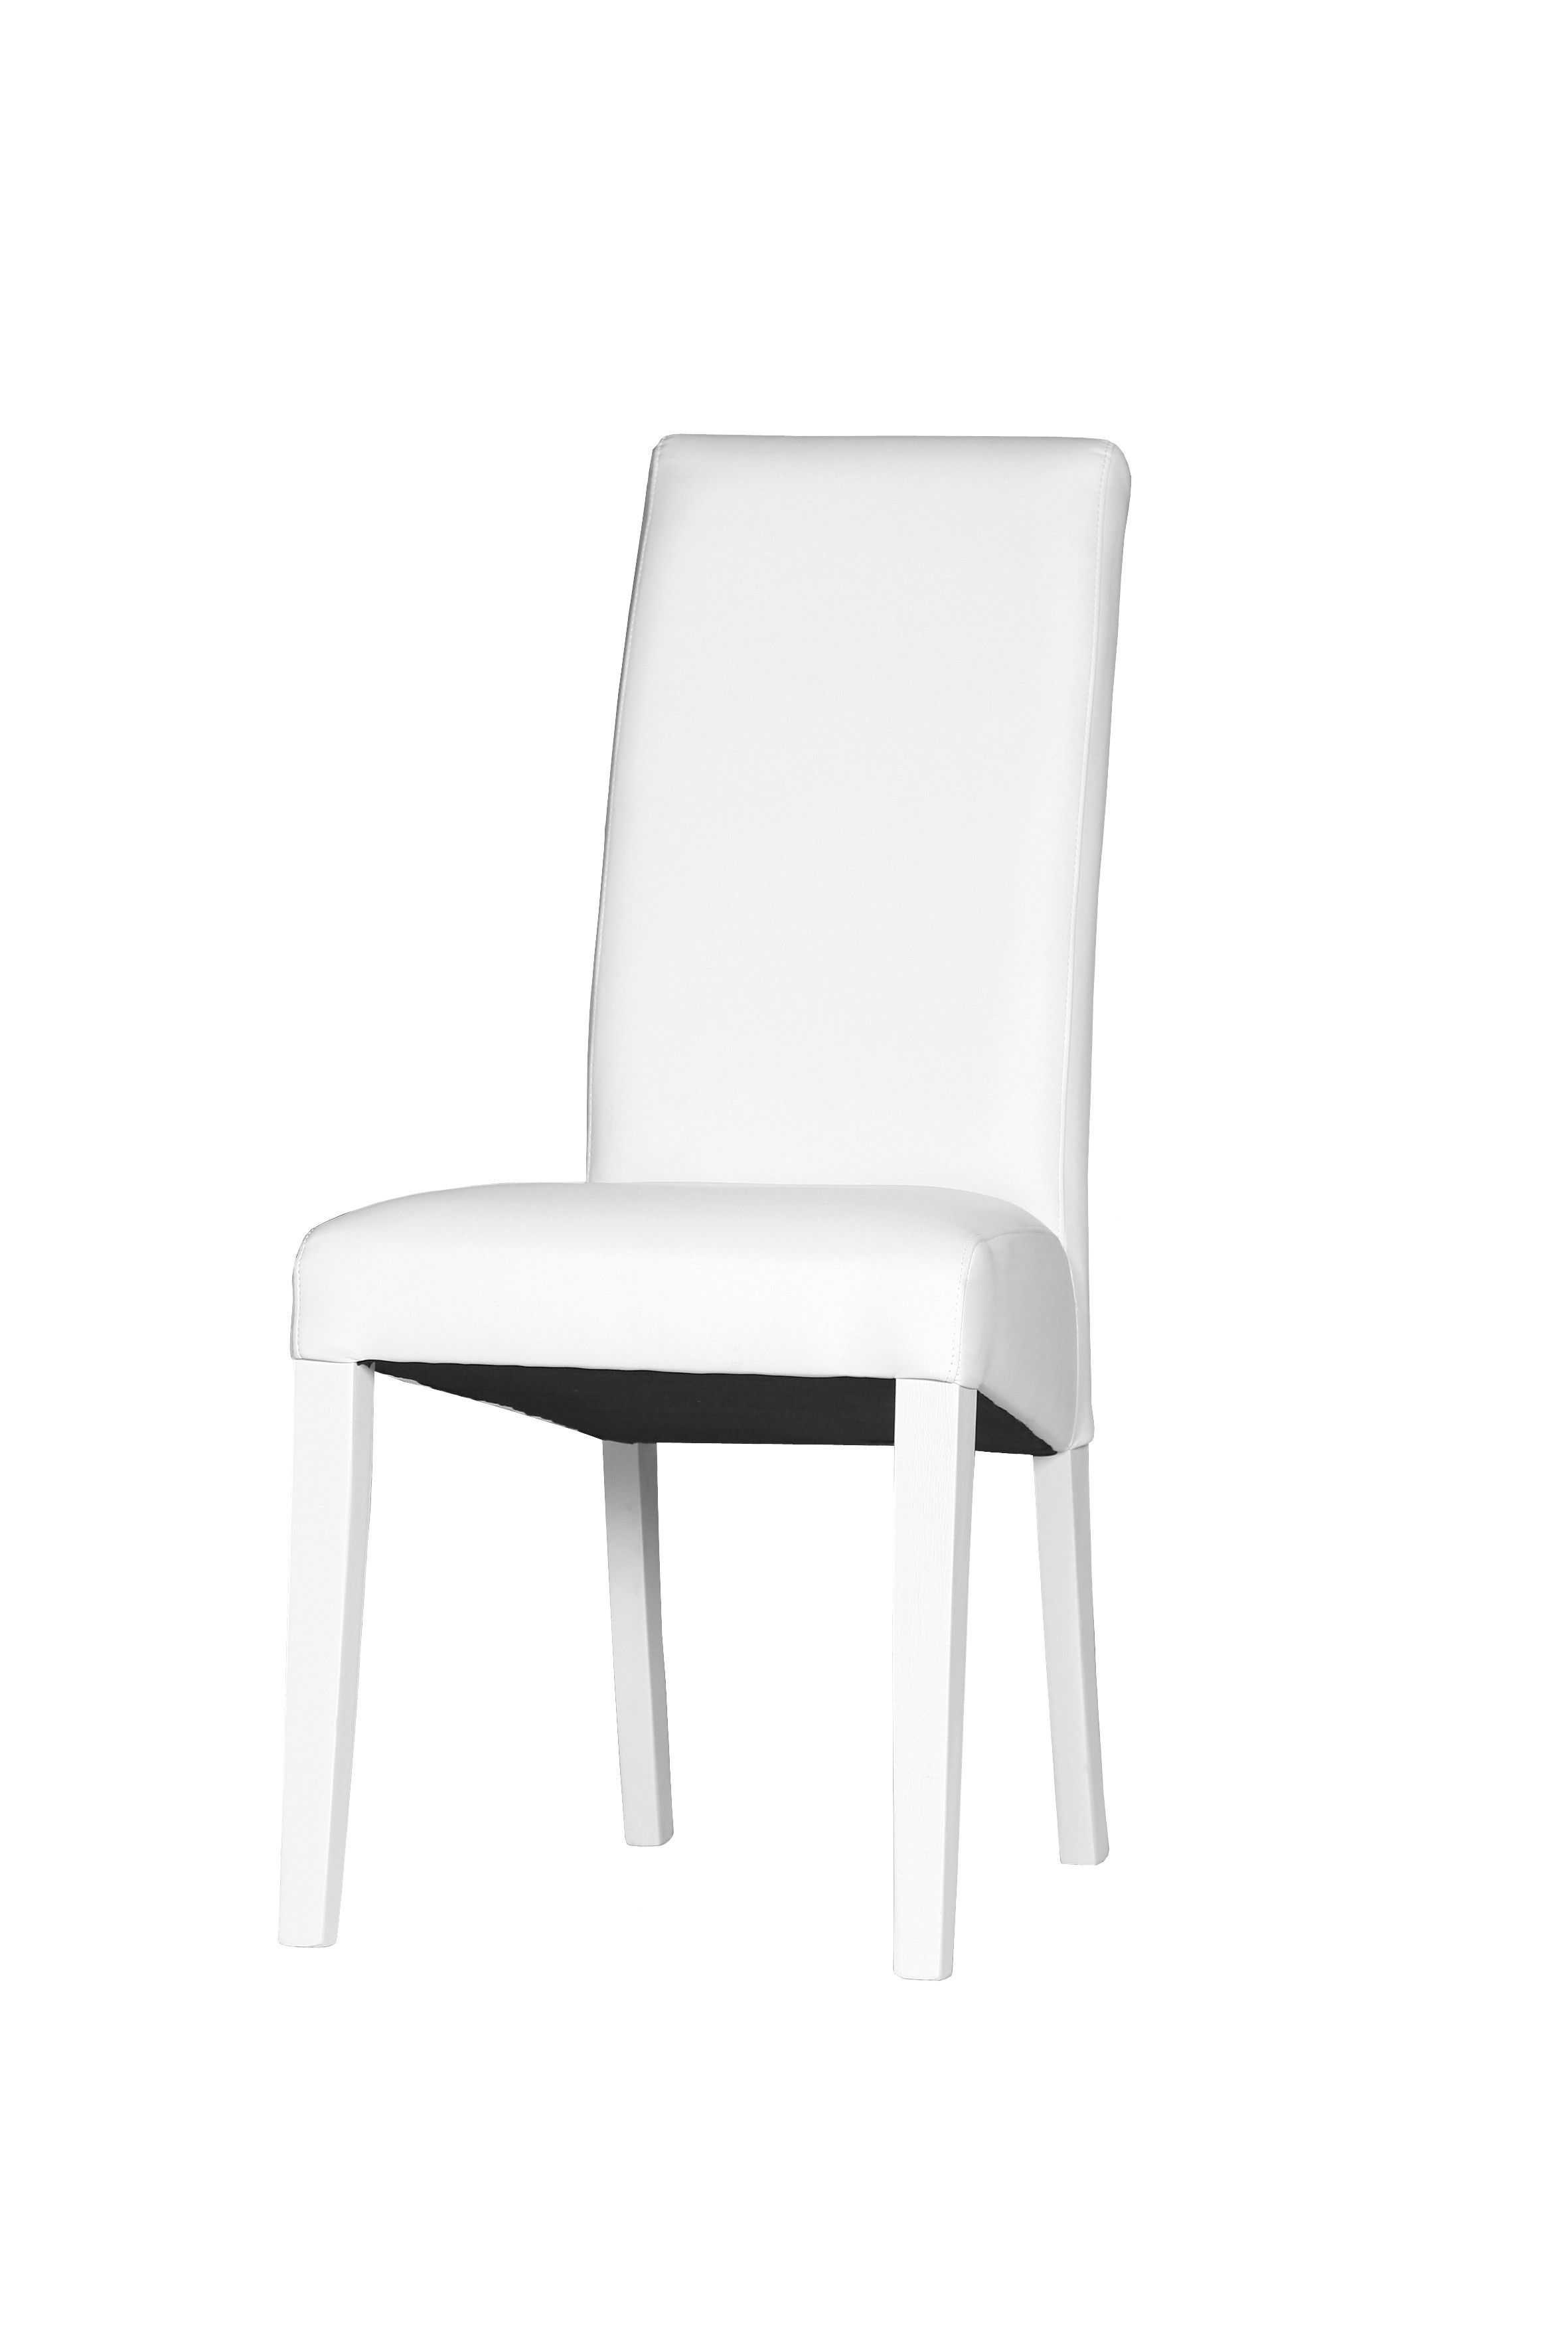 Beau chaise blanche simili cuir pas cher d coration for Chaise blanche solde